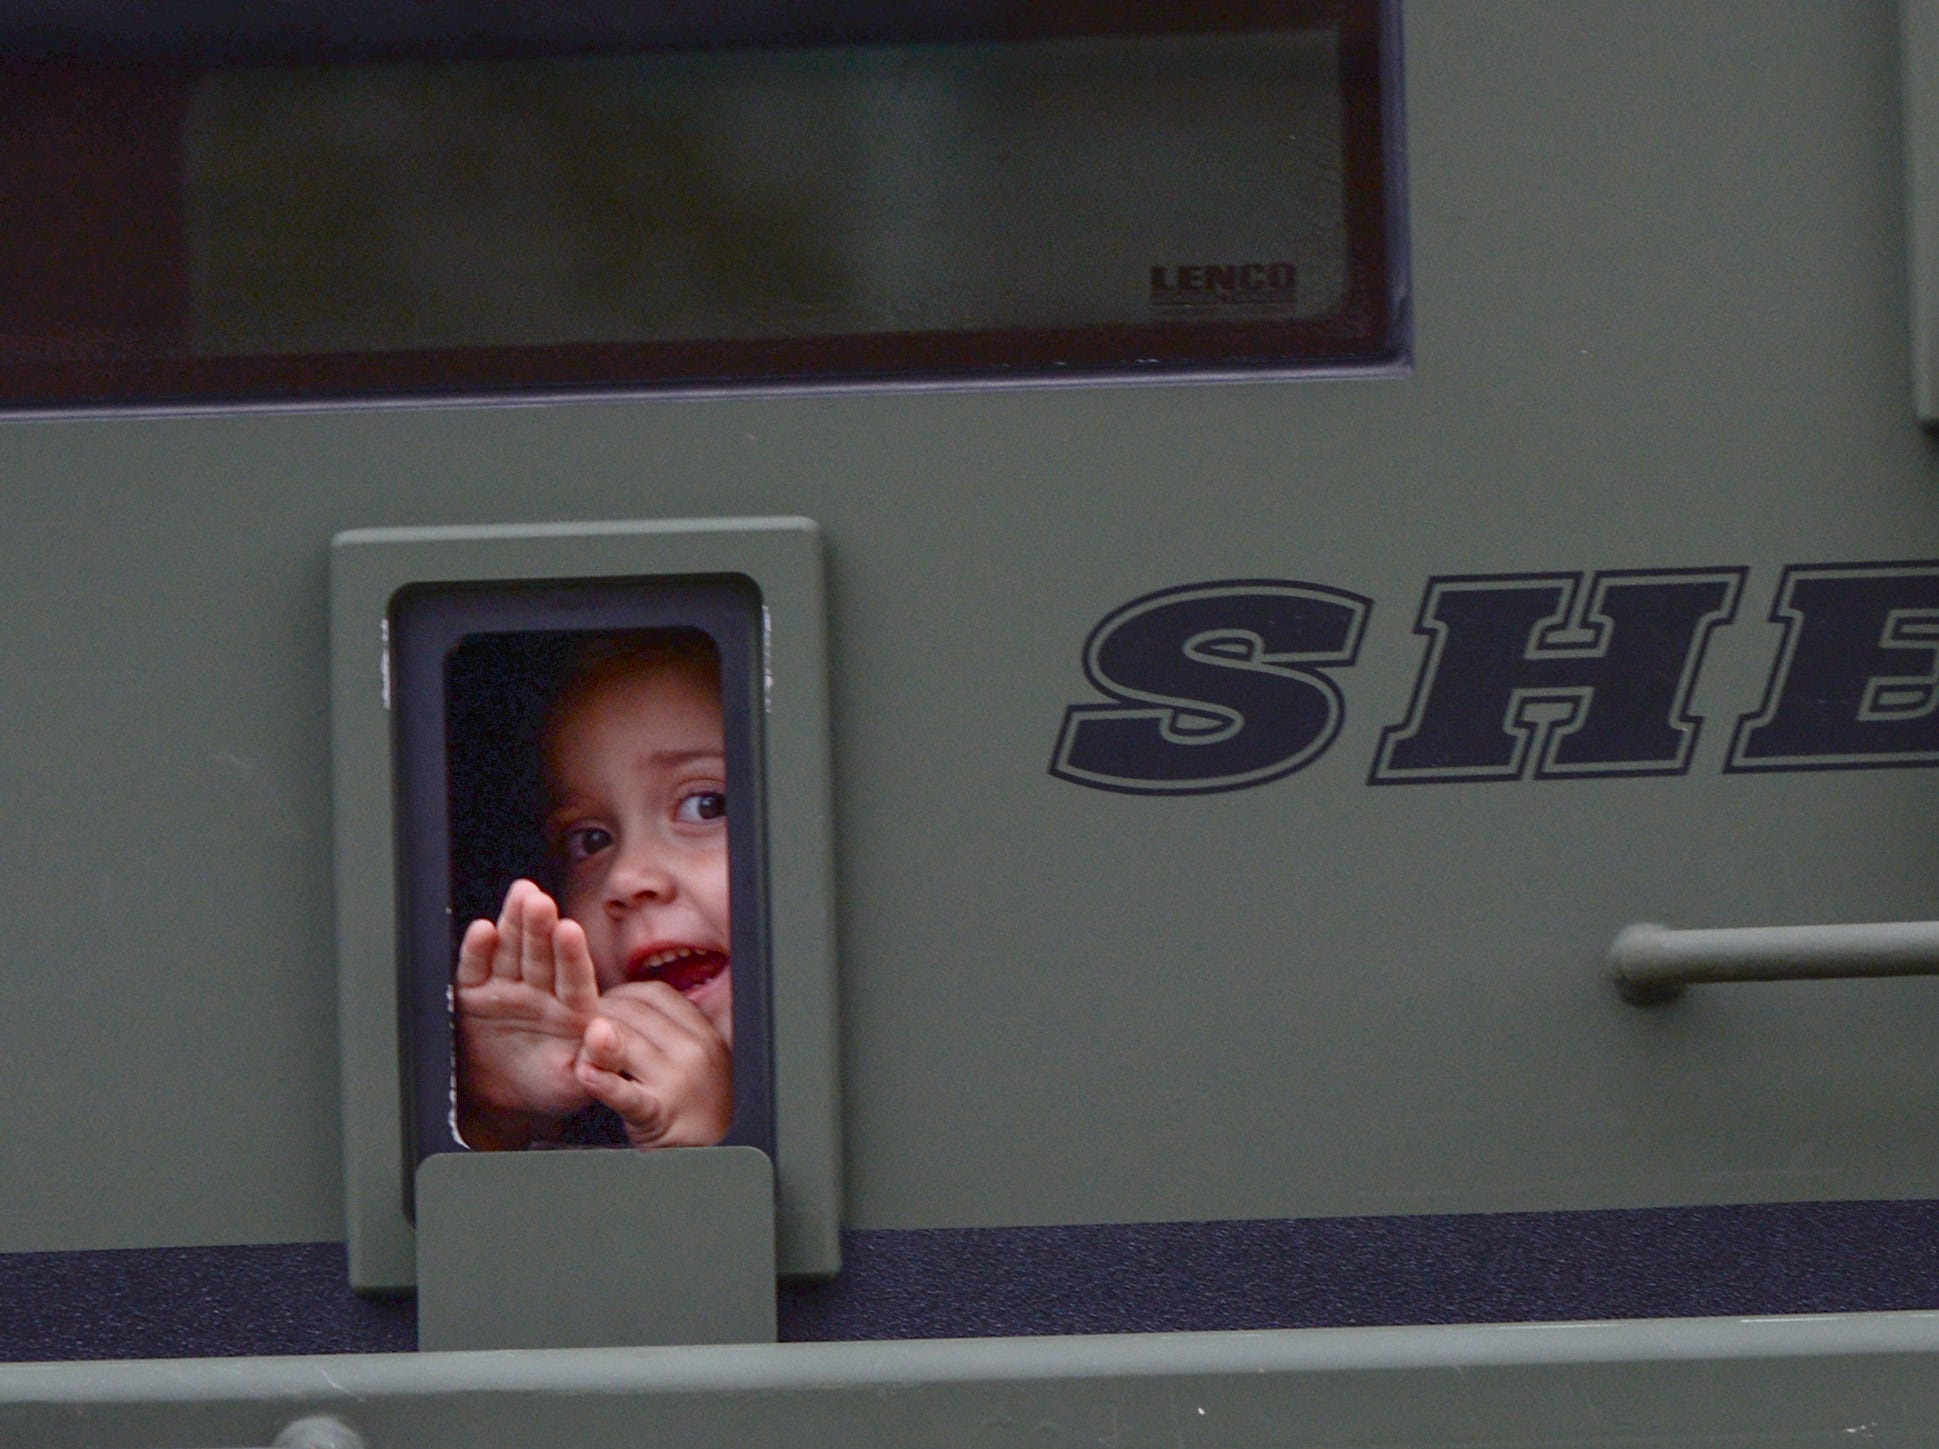 A girl waves from inside the Anderson County Sheriff SWAT truck during a procession of law enforcement riding to the 2019 Peace Officer Memorial Service Wednesday May 15, 2019. People attended to help honor the lives of officers lost in the line of duty.